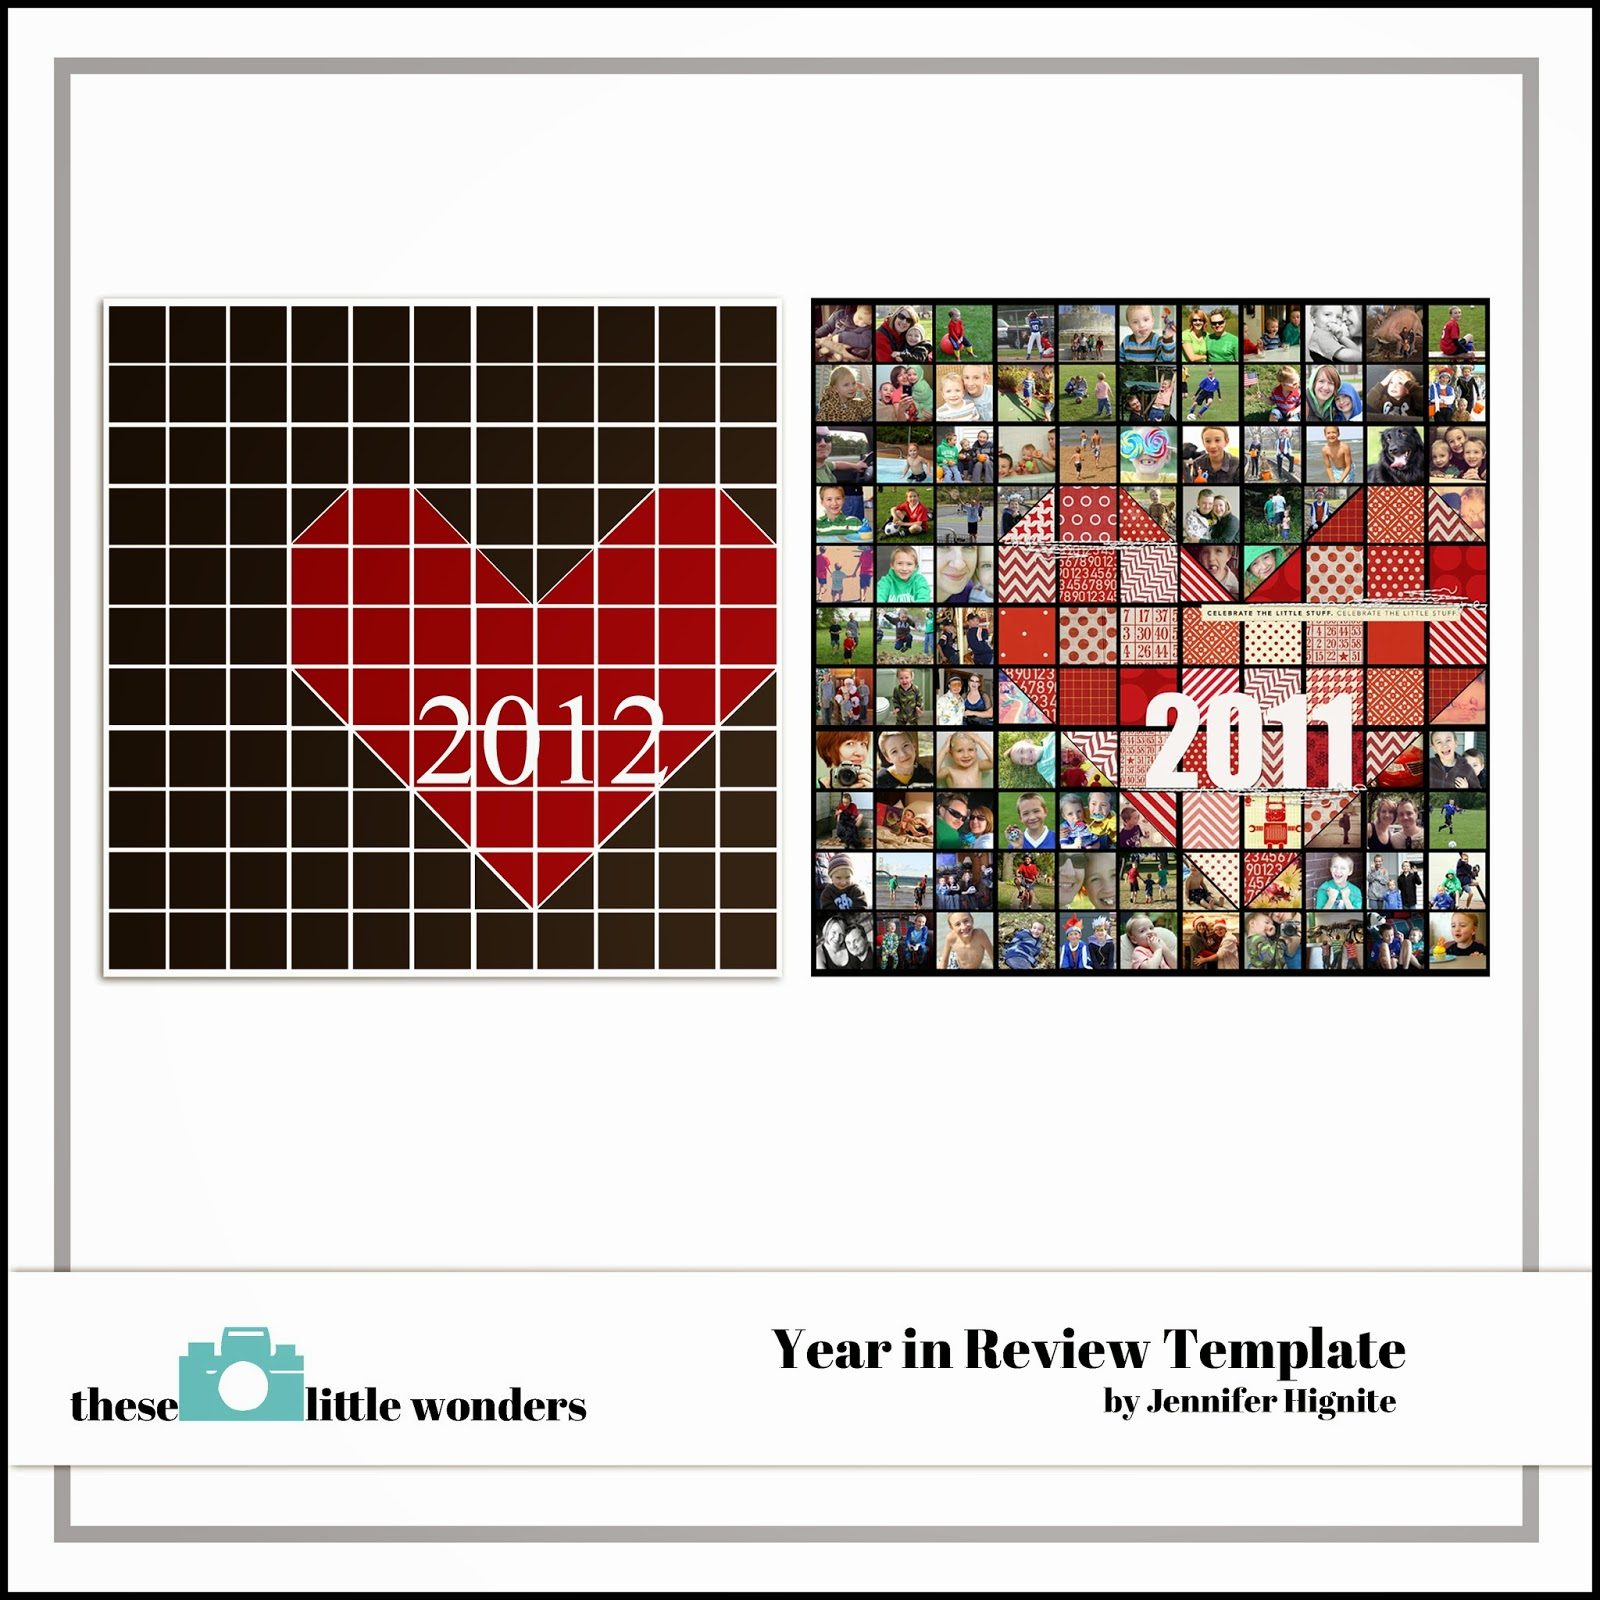 http://jenniferhignitedesigns.bigcartel.com/product/year-in-review-template